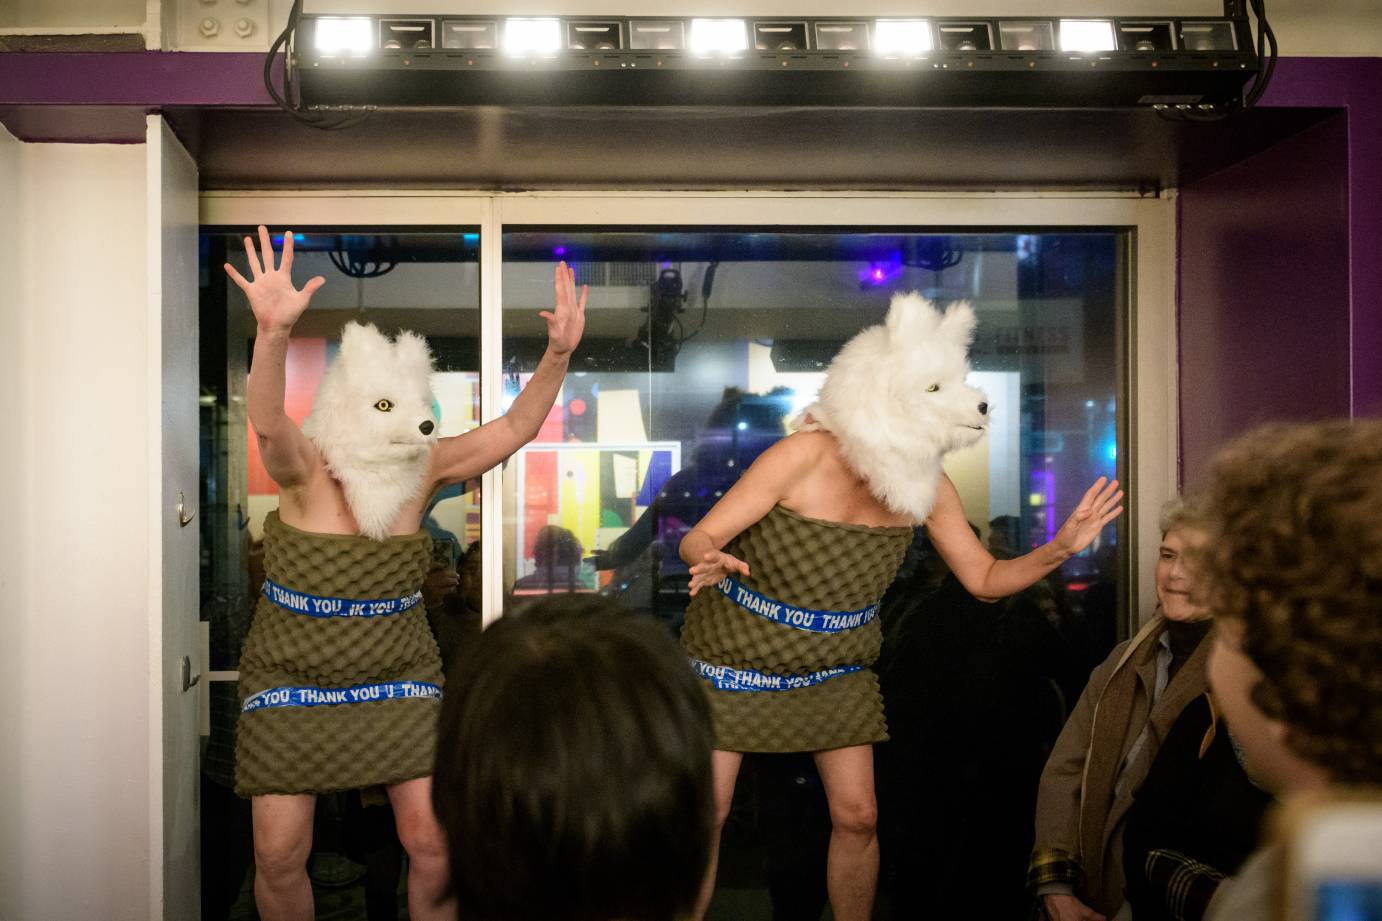 Two women in wolf heads get the crowd going in a theater lobby